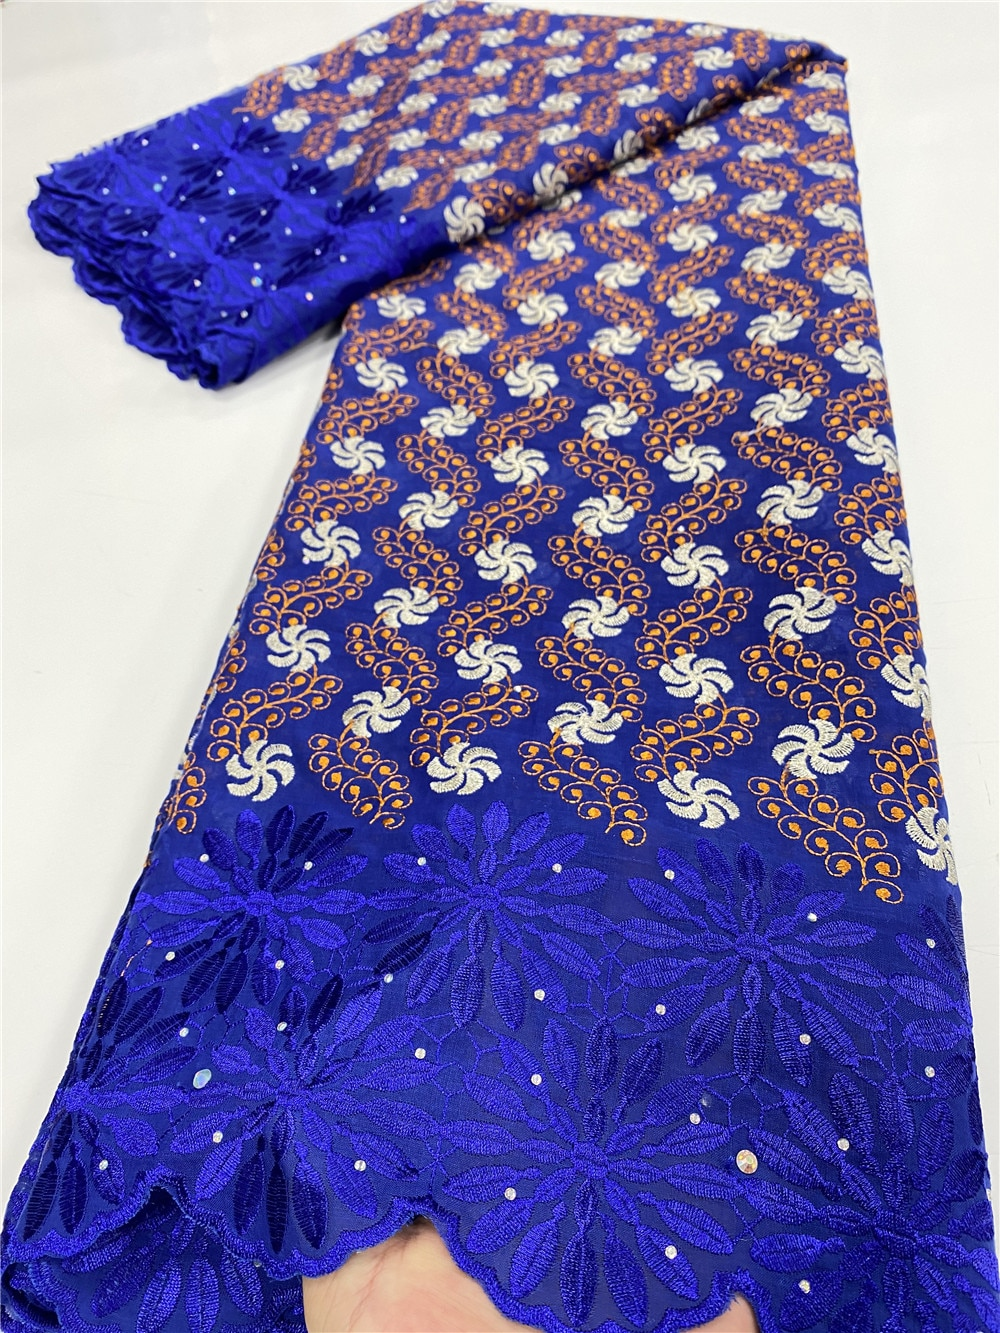 Swiss Voile Lace In Switzerland 2020 High Quality Embroidery African Lace Fabric Fashion French Cotton Lace Fabric YA3550B-6 african 100% cotton lace fabric 2021 high quality lace material in switzerland embroidery swiss voile lace fabric ty013